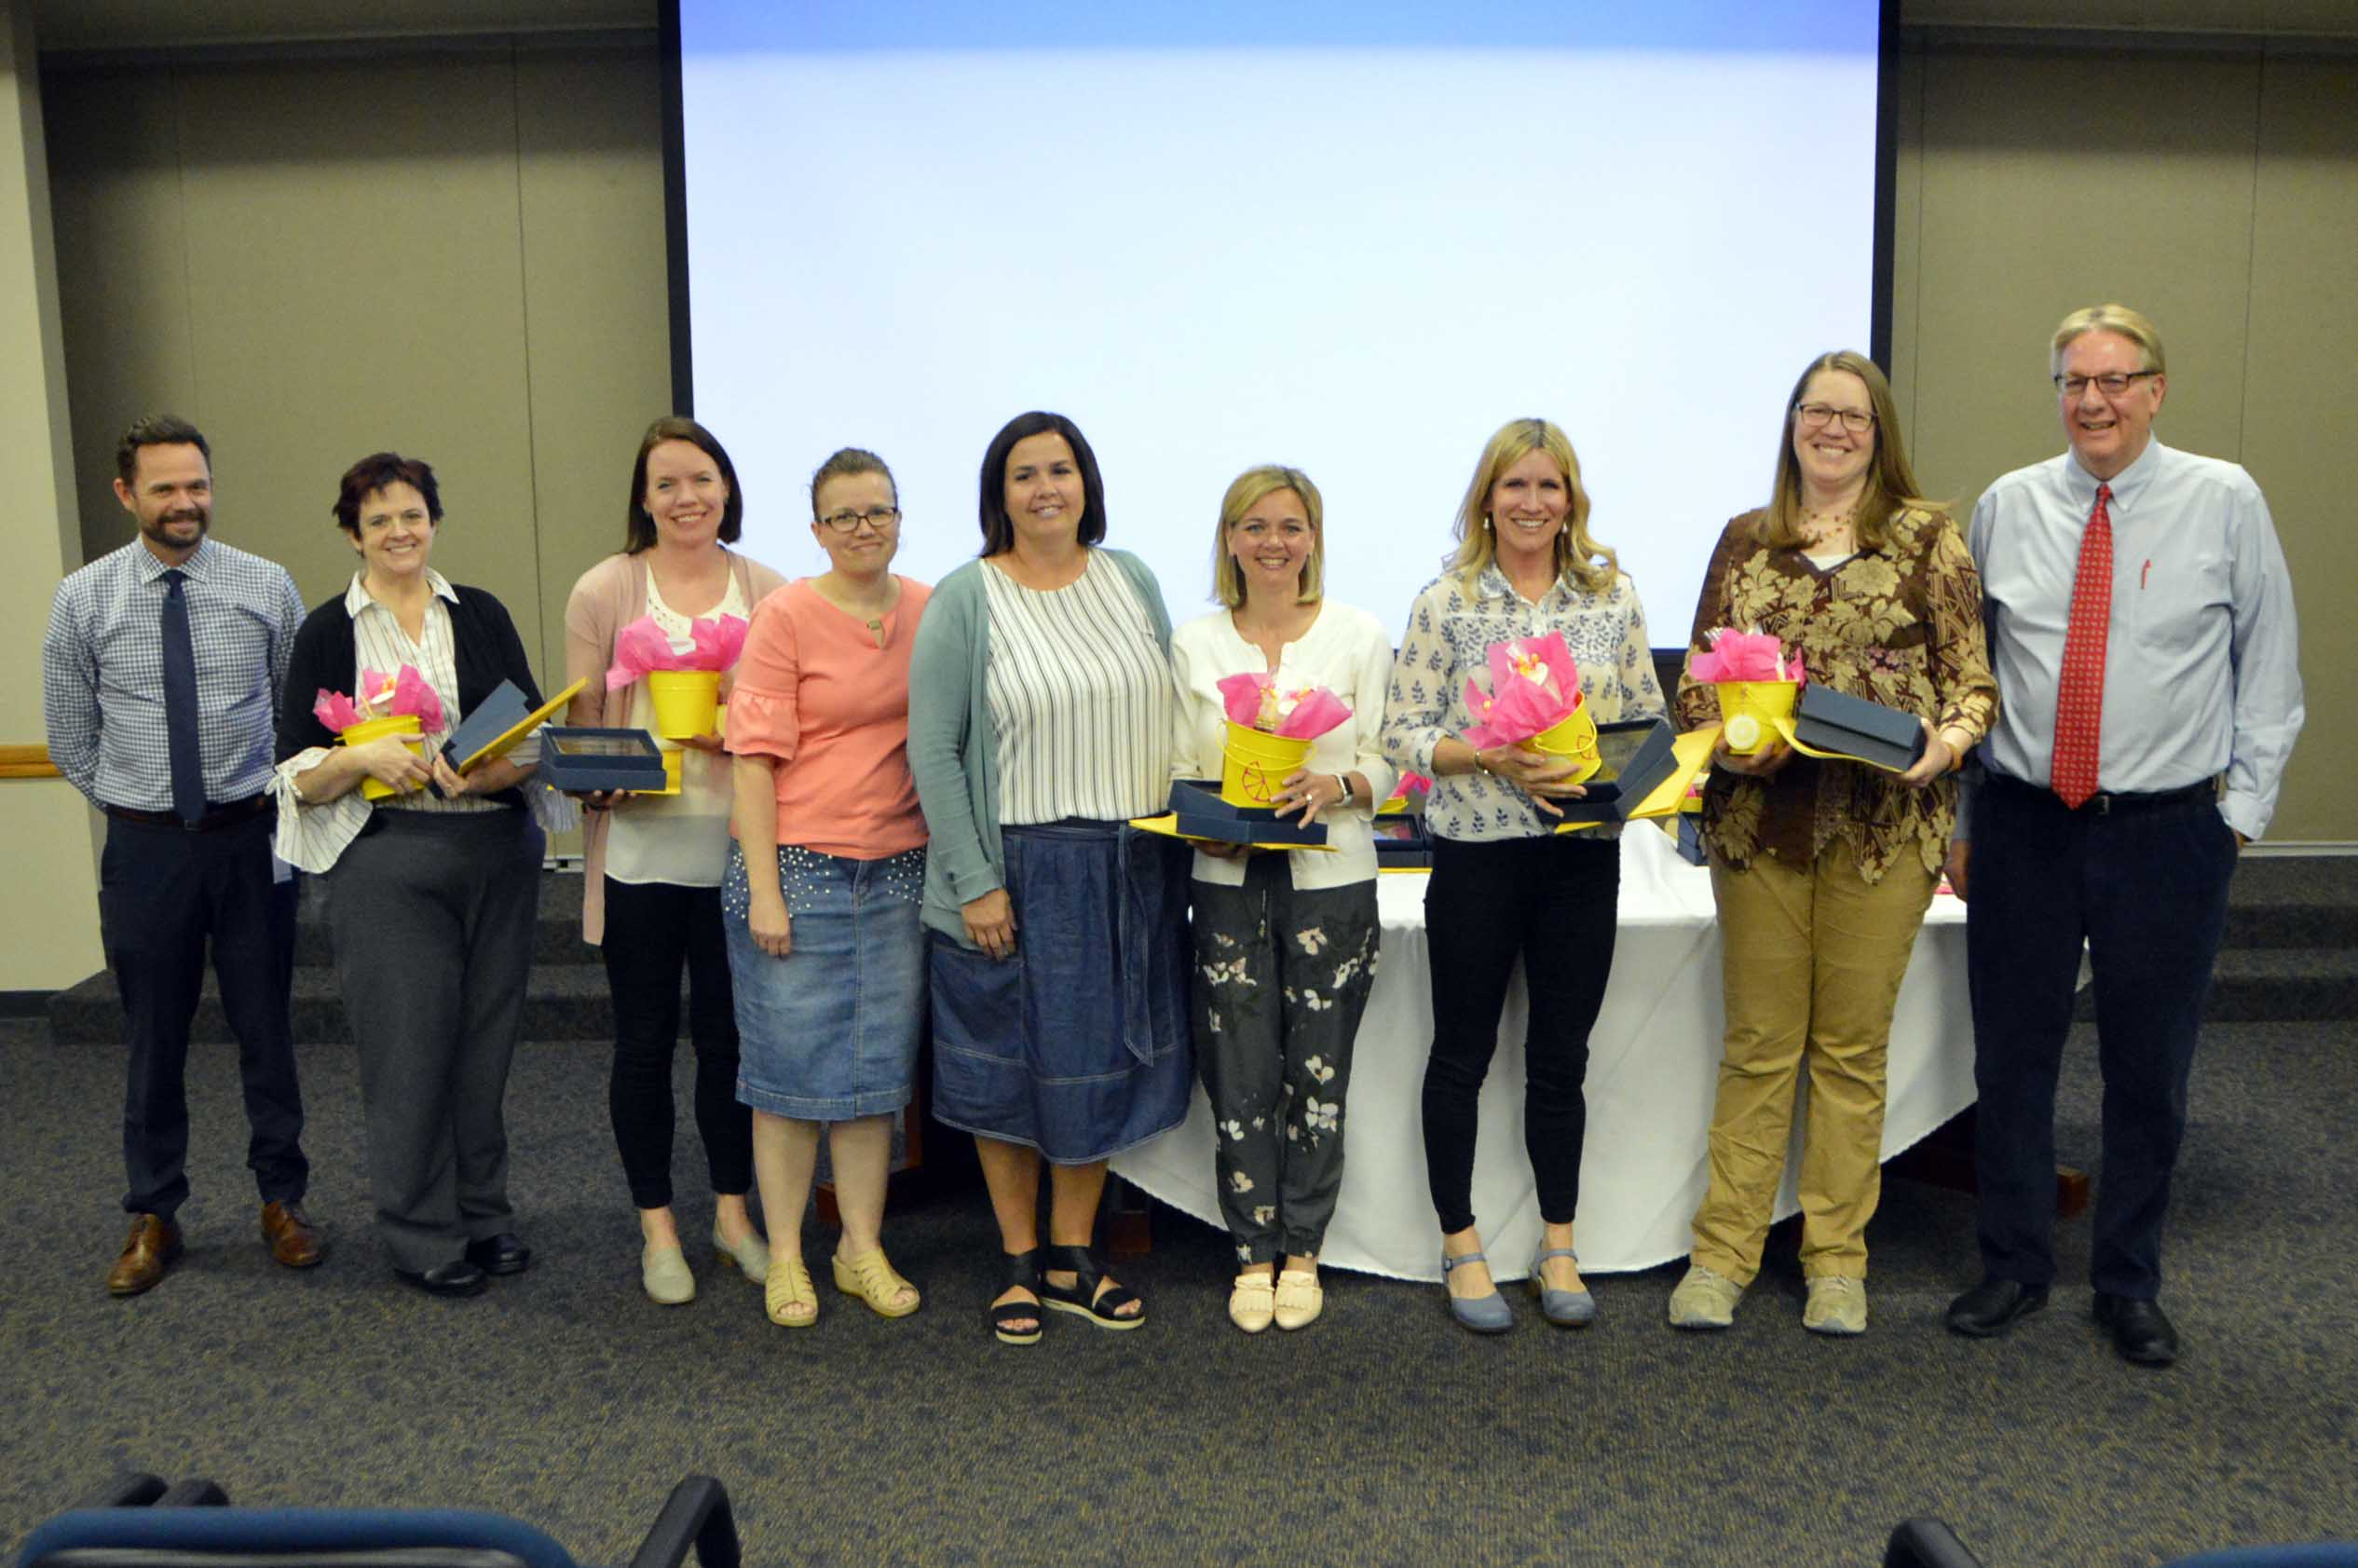 Region 5 PTA awardees stand with plaques